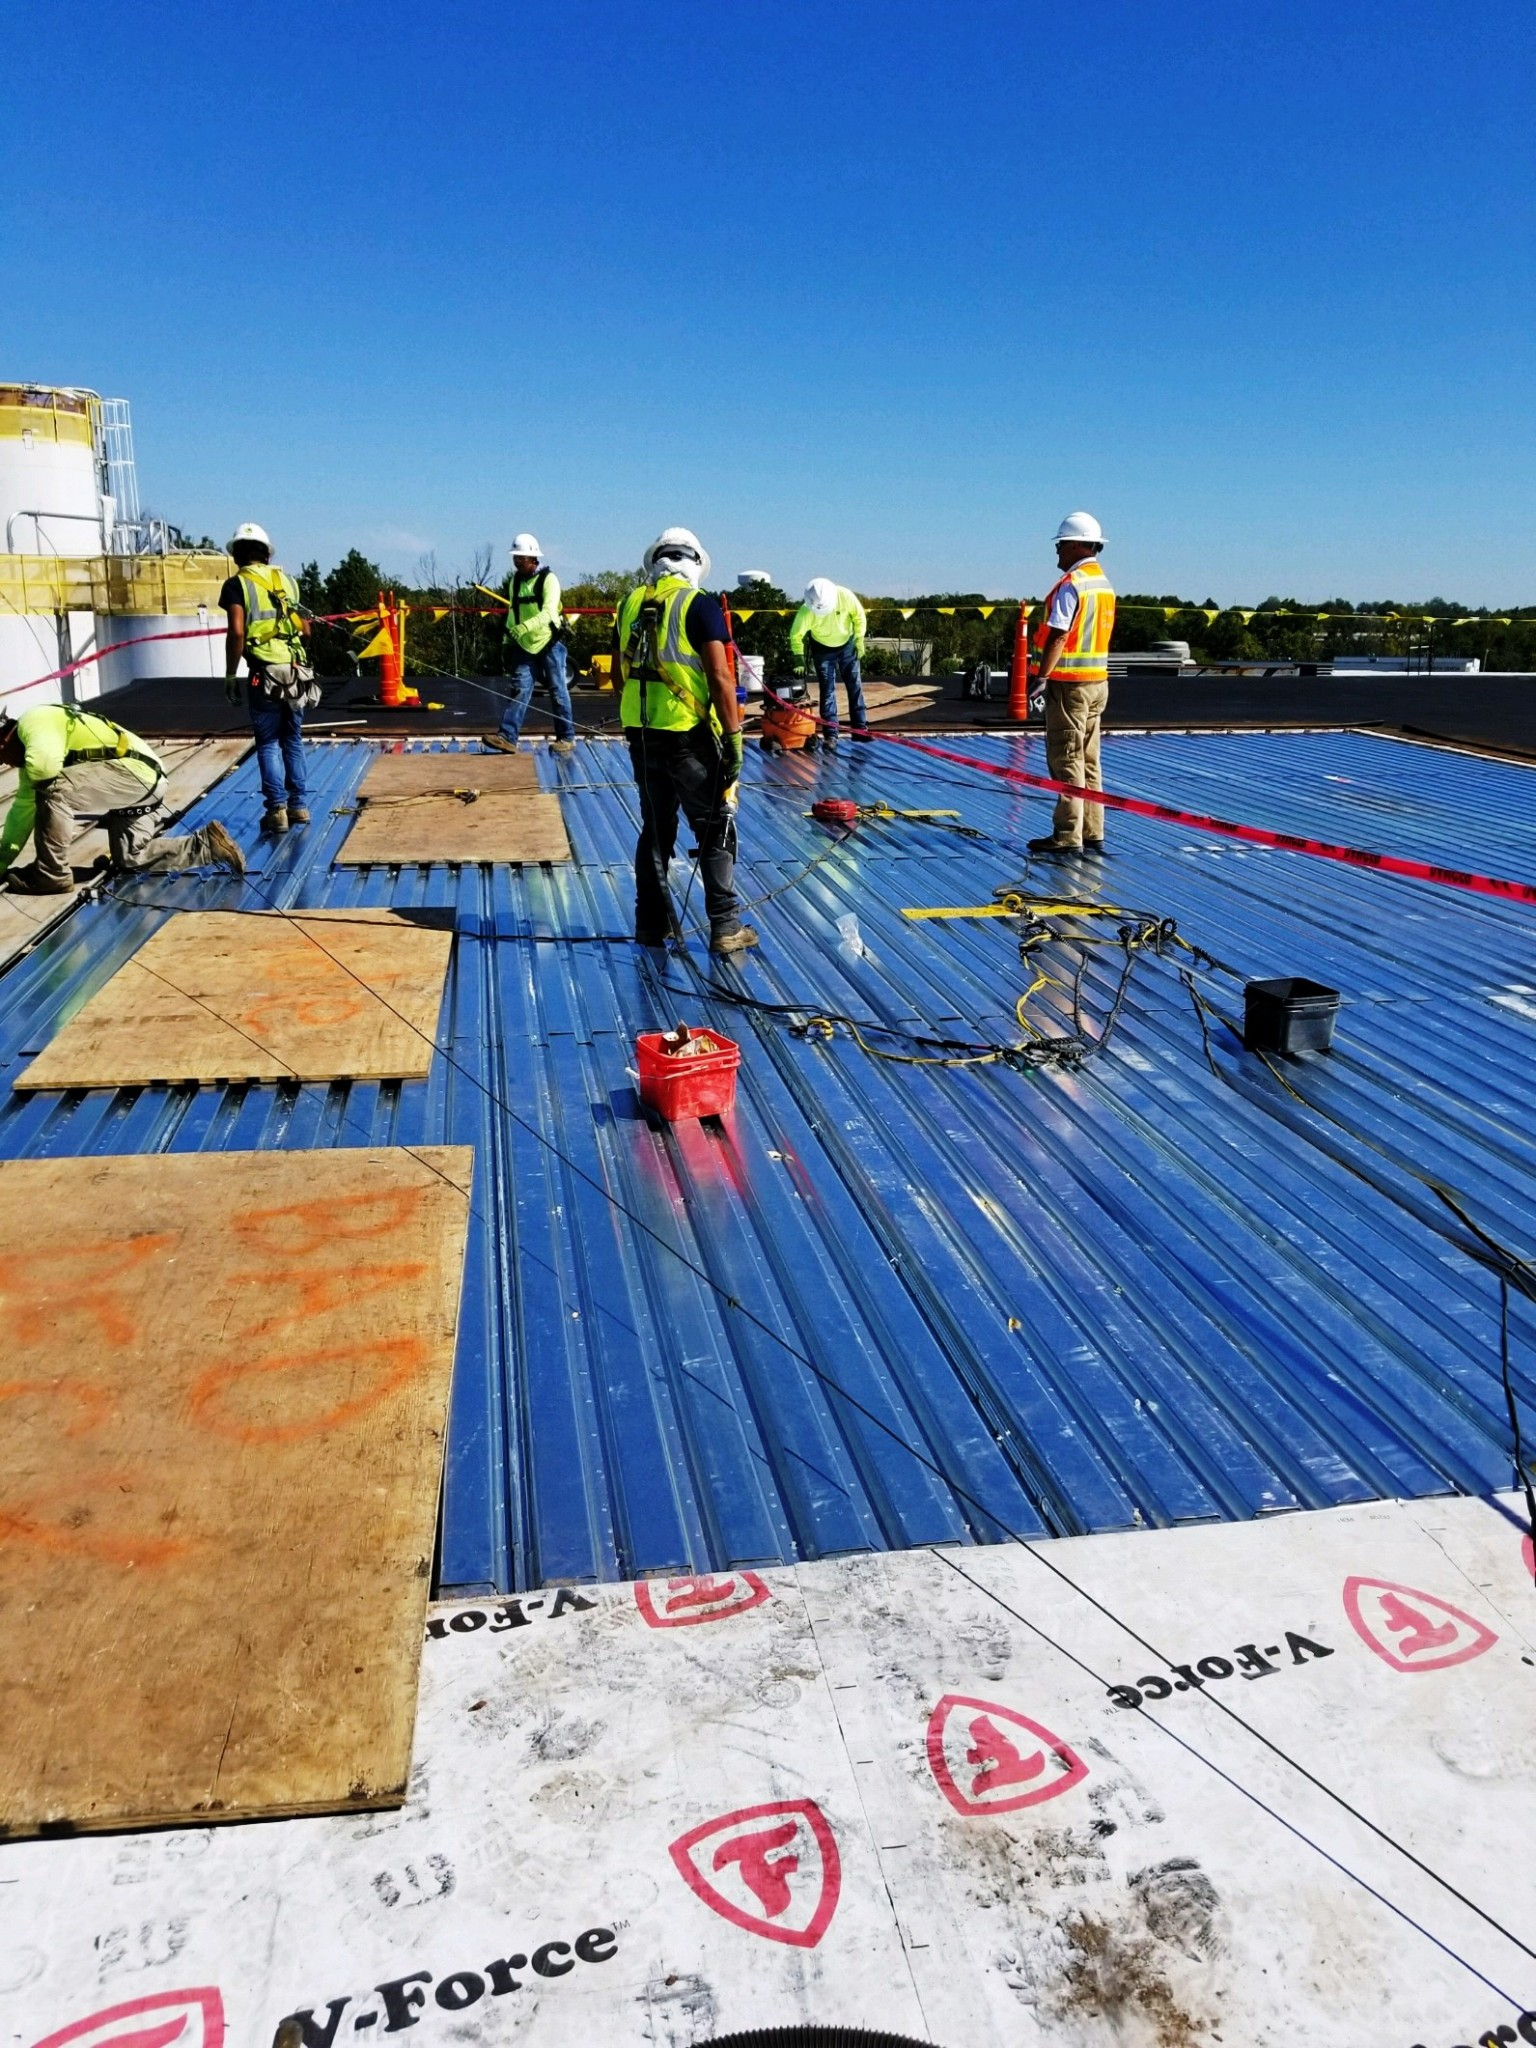 Kellogg Roof Areas C 1 C 4 D Amp E Evans Roofing Company